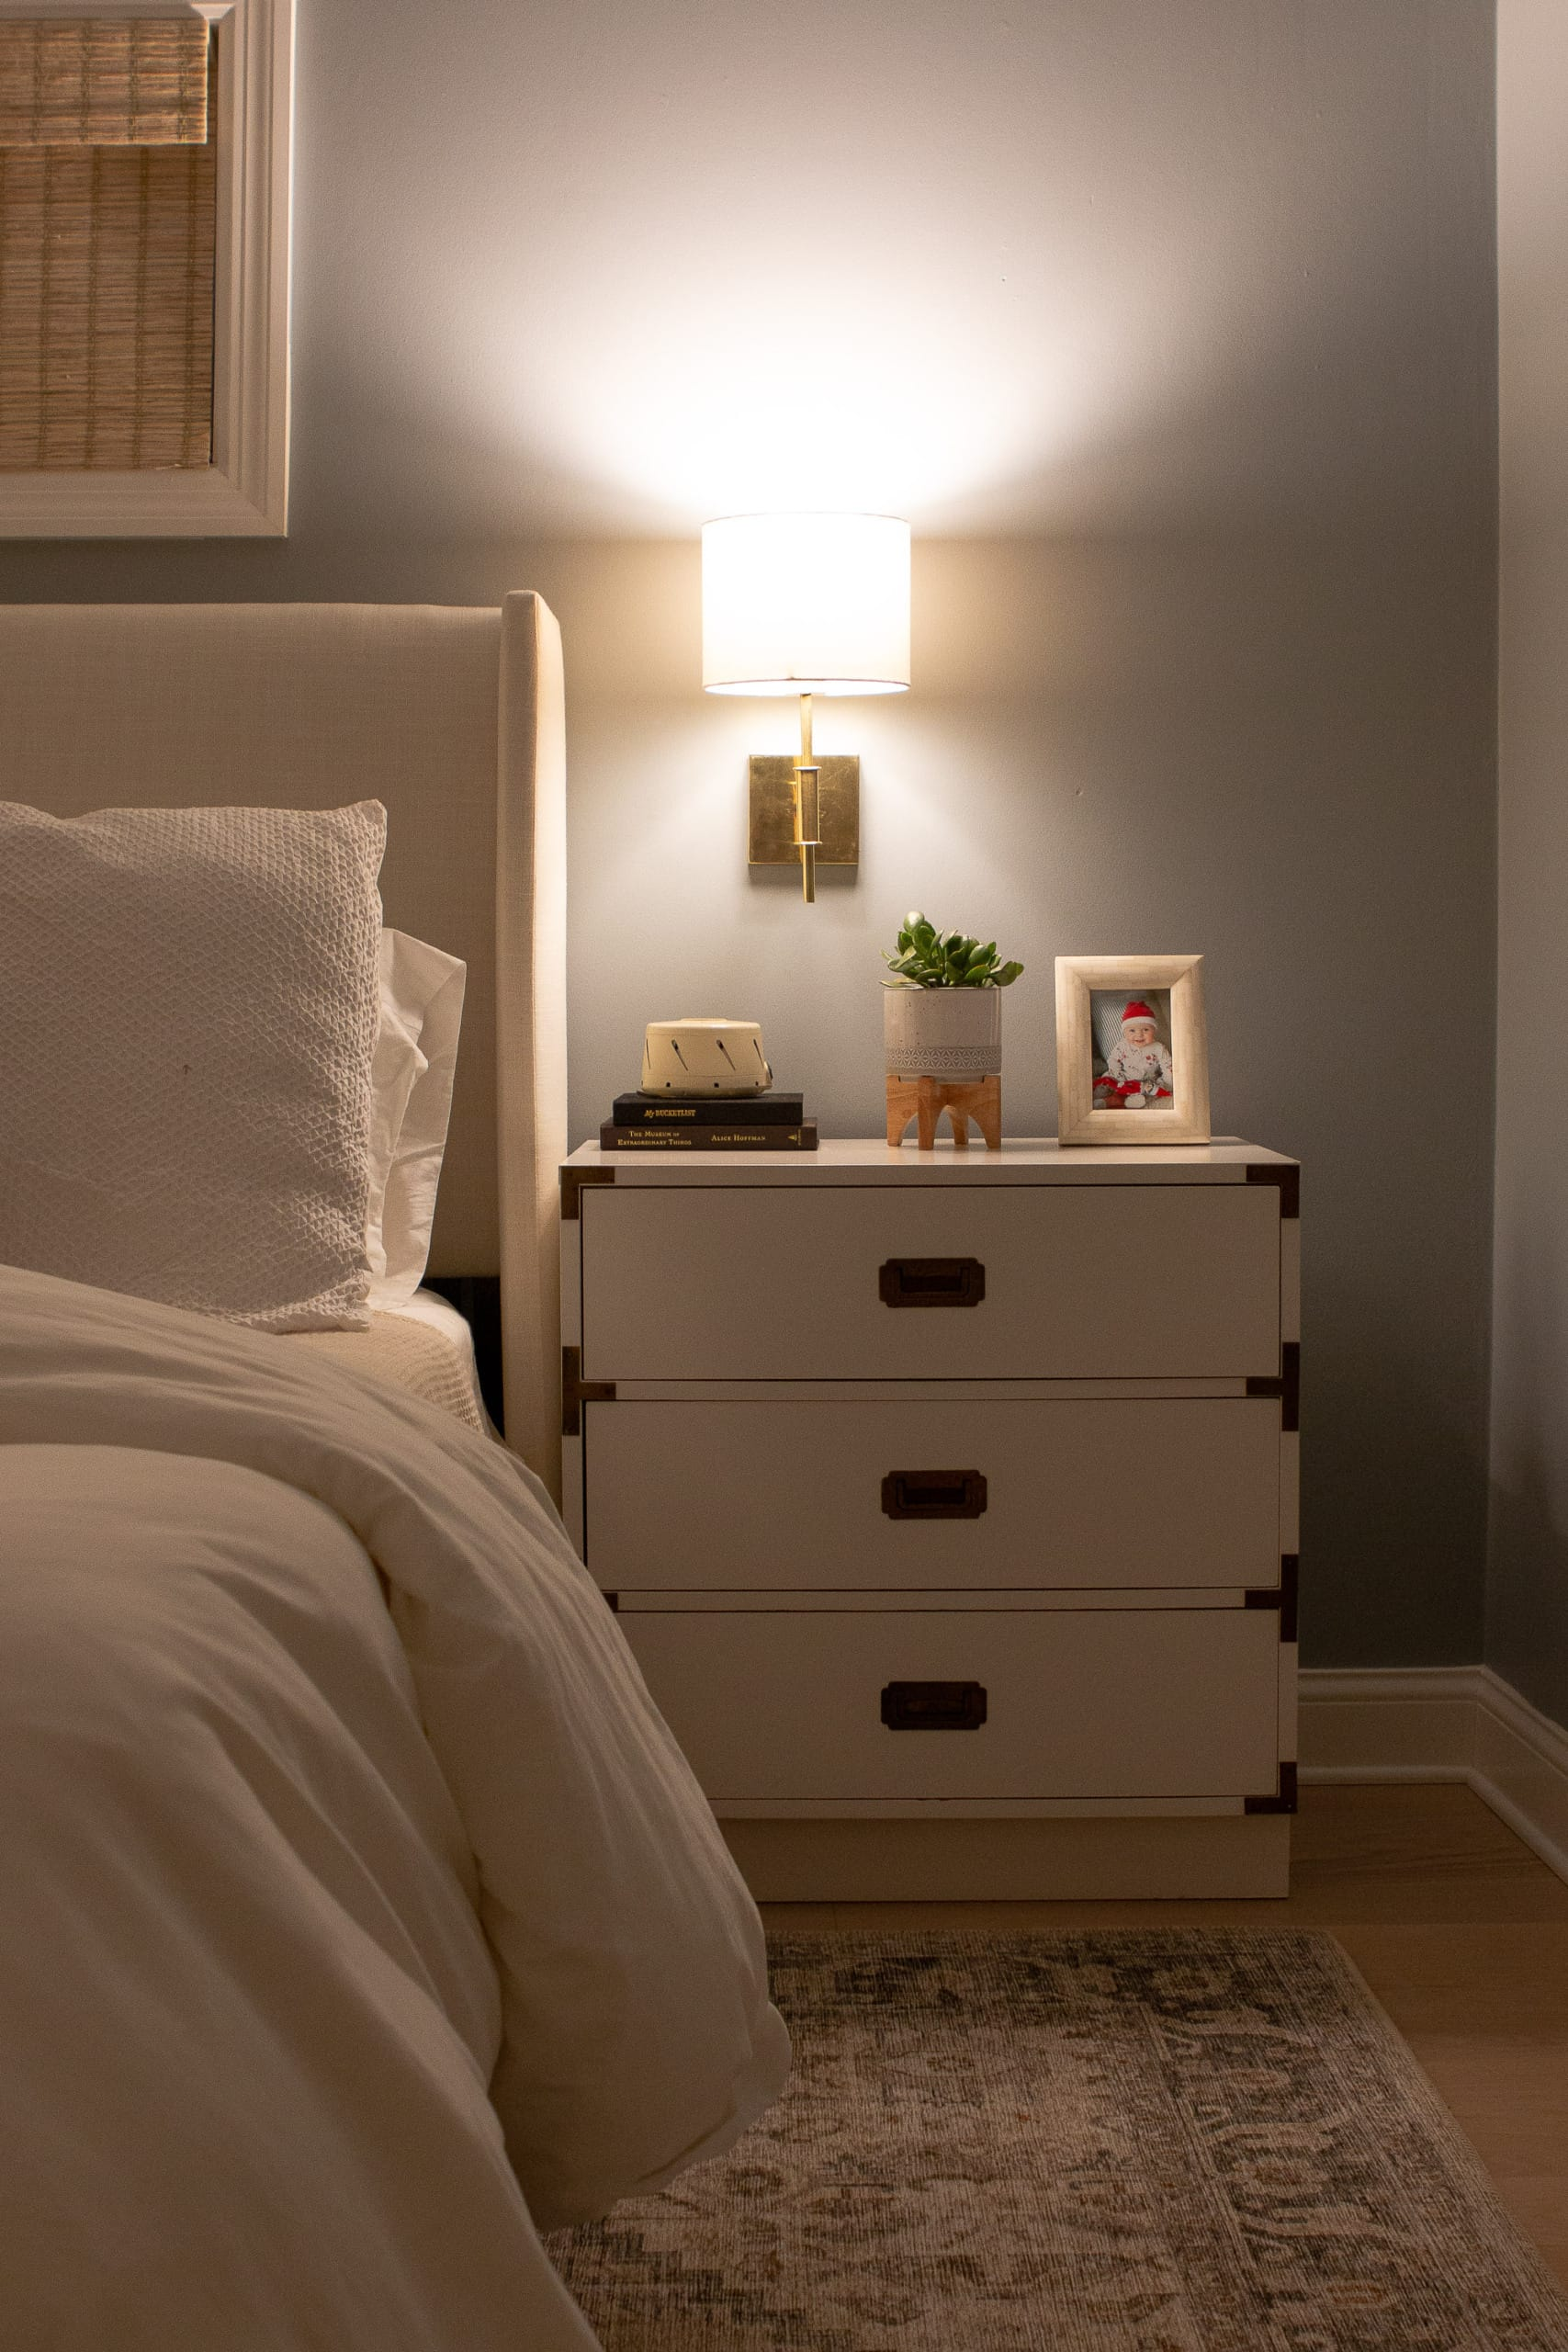 Our home tour at night with warm sconces on